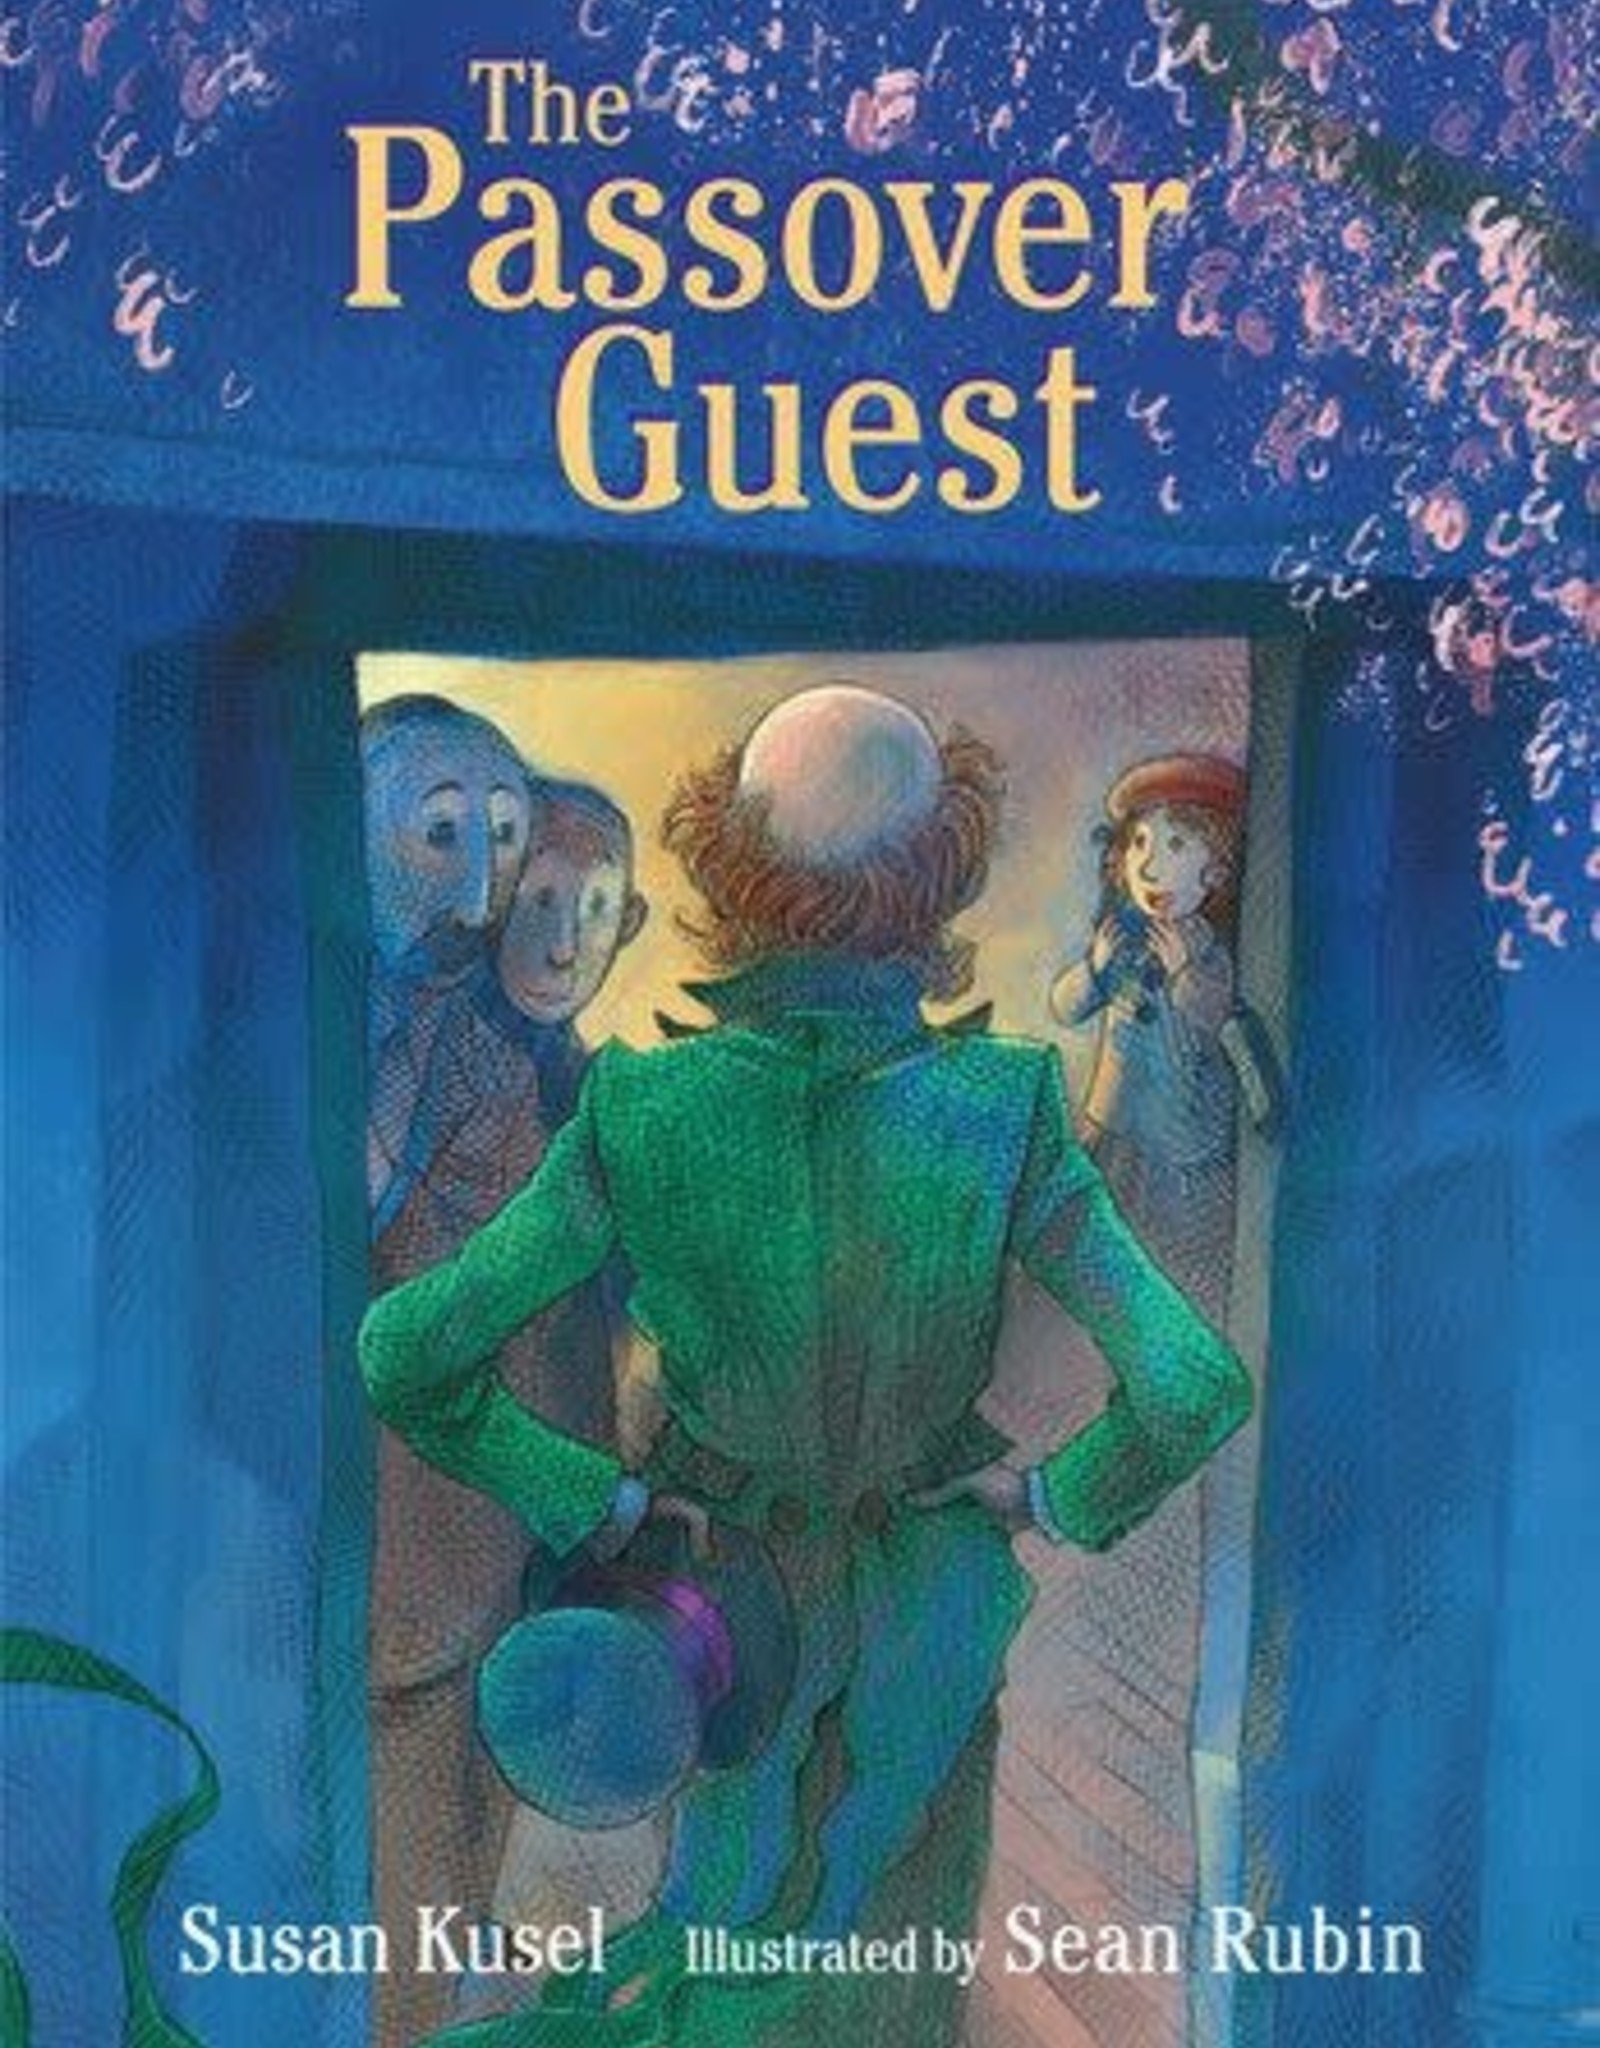 The Passover Guest  by Susan Kusel